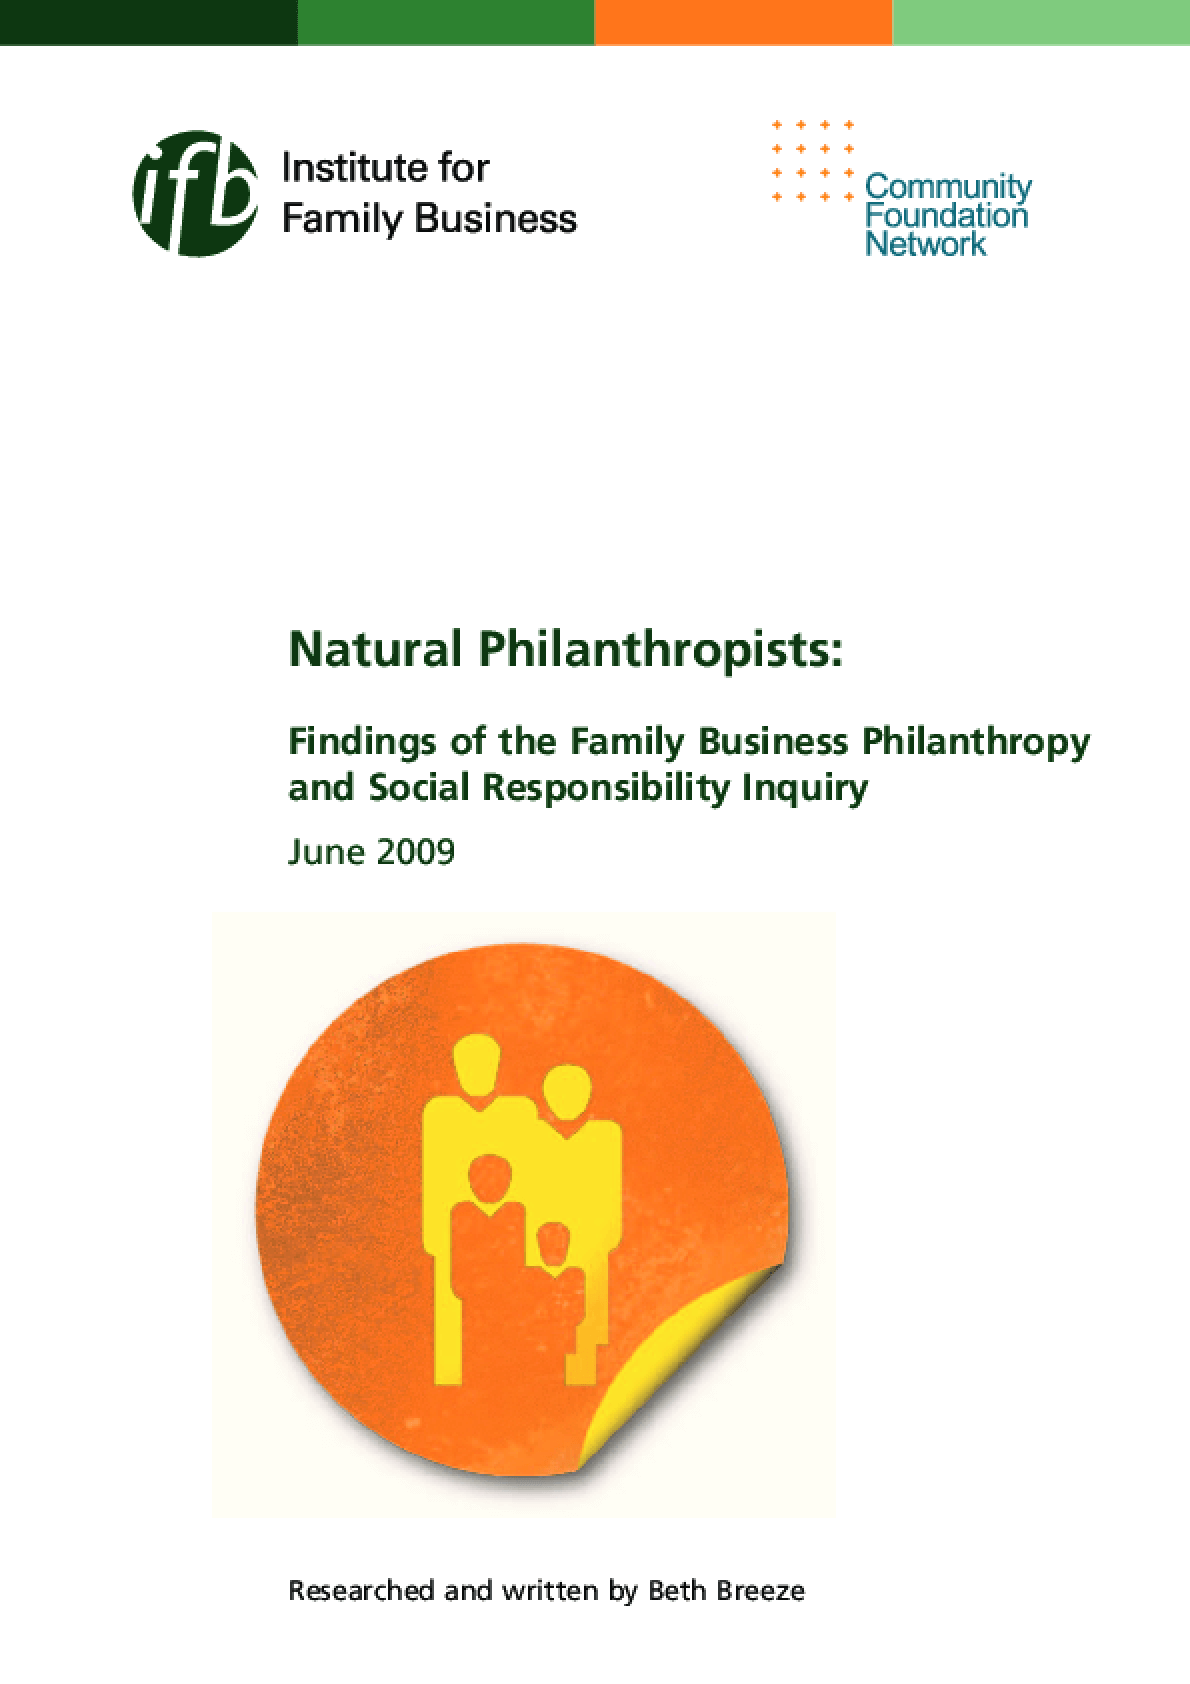 Natural Philanthropists: Findings of the Family Business Philanthropy and Social Responsibility Inquiry